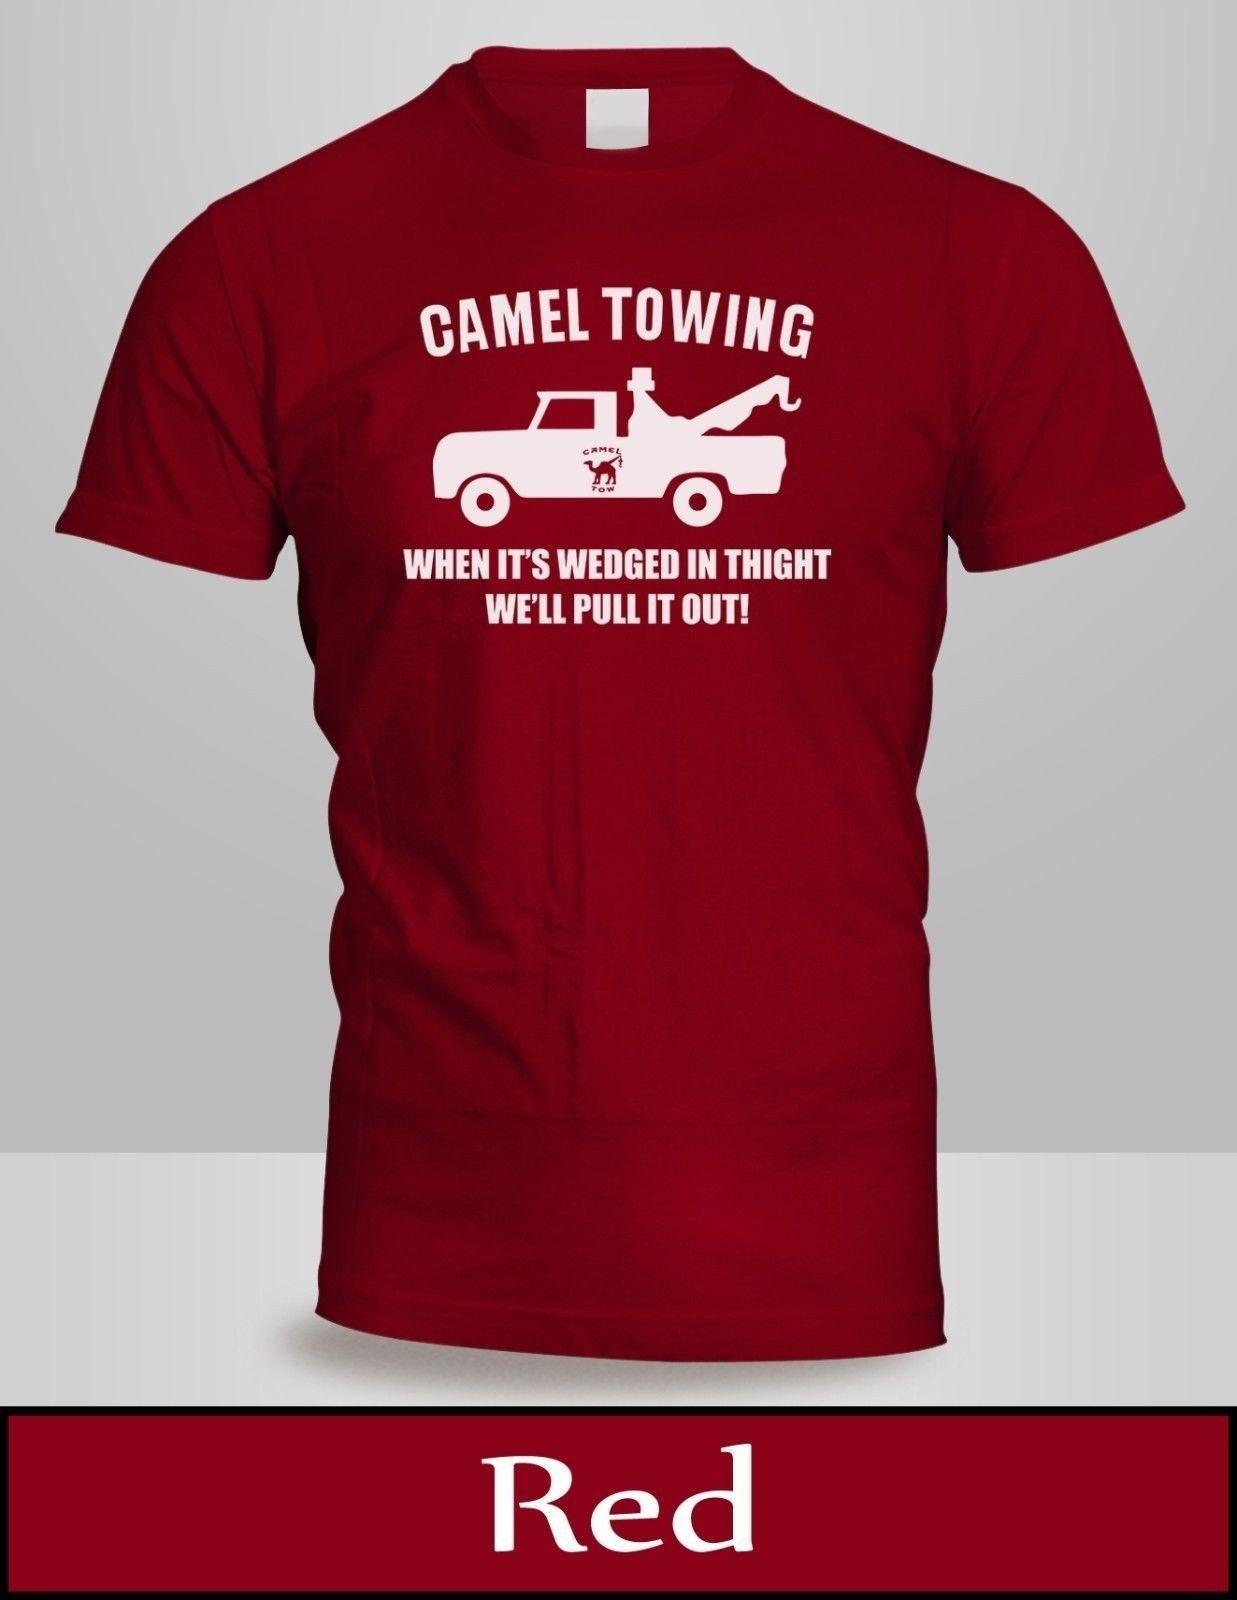 c897a8e6 Camel Towing T Shirt Mens Top Red Tow Service Toe College Humor Cool Tee  New 2 Comfortable Fabric Short Sleeve Men ,T Shirt O Neck Knitted T Shirt  Awesome ...